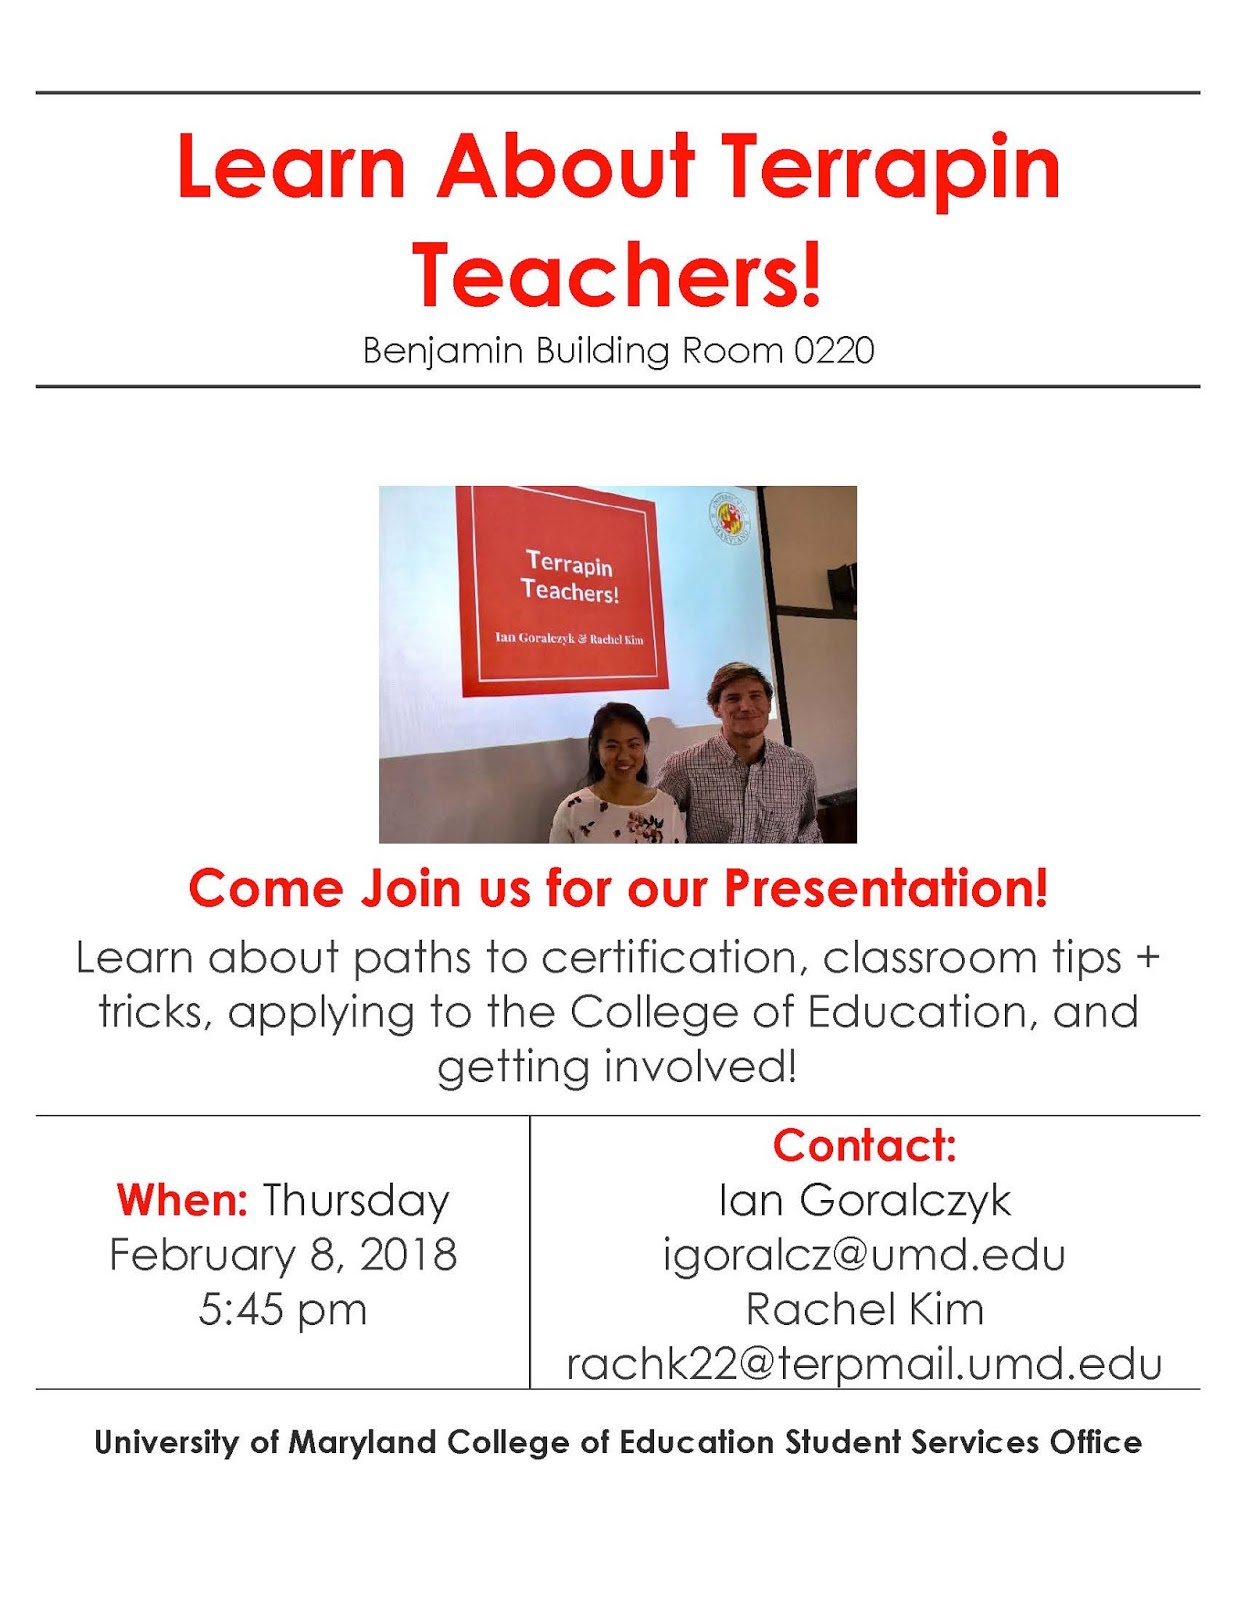 Ccjs undergrad blog information session on the terrapin teachers come out to learn more about the different teaching certification pathways fieldwork tips and more 1betcityfo Image collections